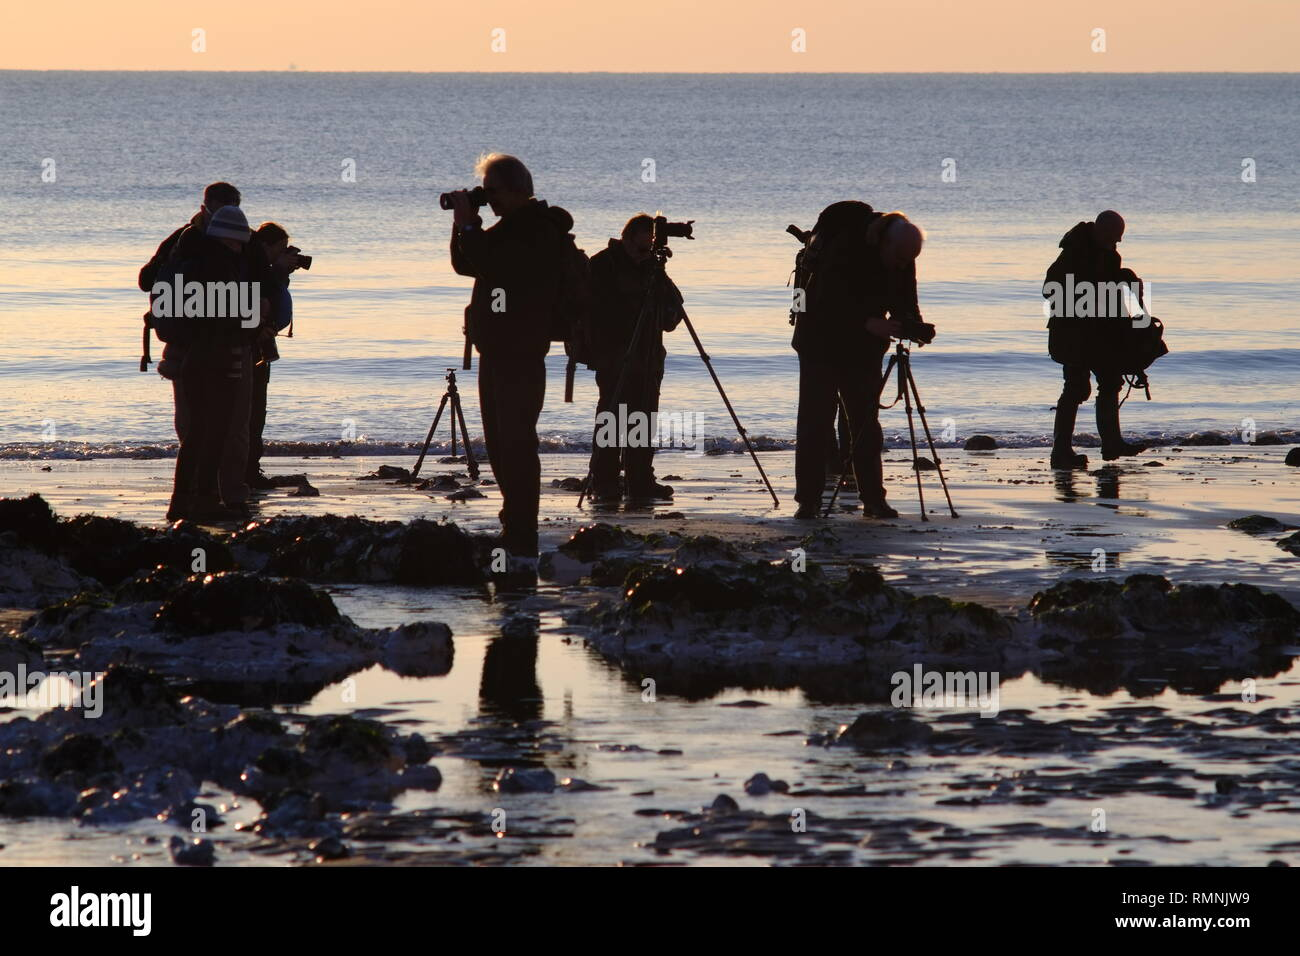 Group of amateur photographers photographing the sunset on a beach. - Stock Image